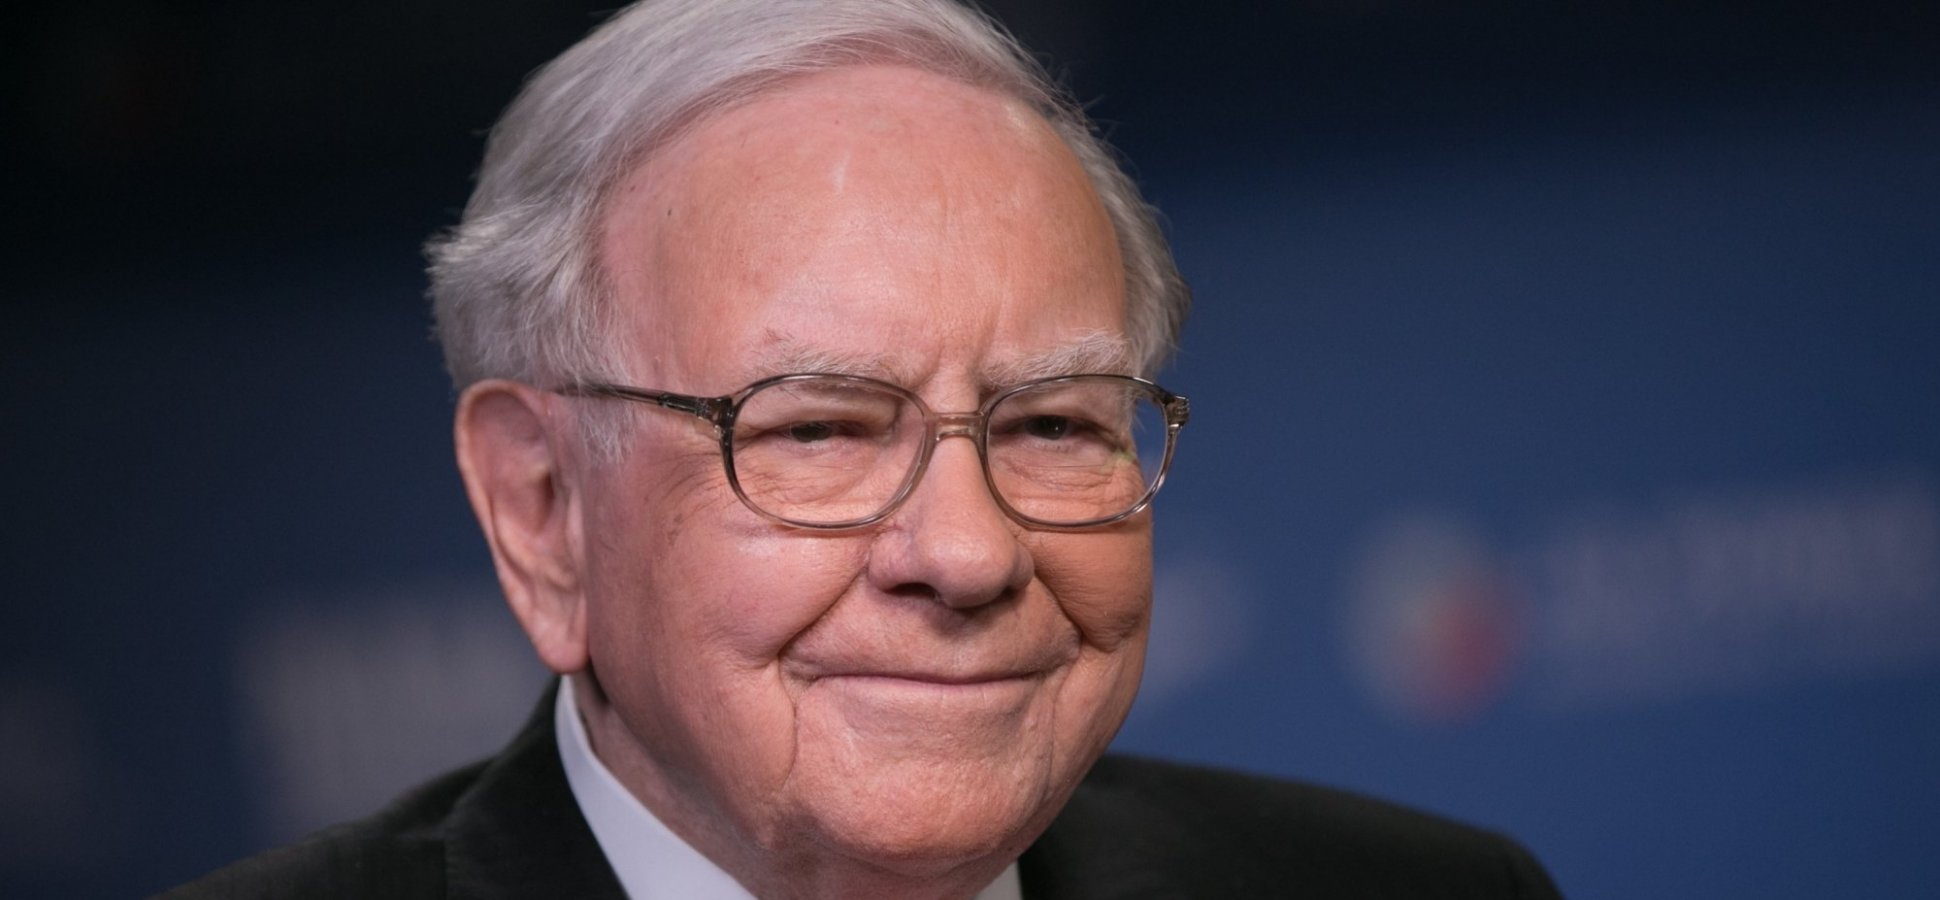 The 1 Question Warren Buffett Would Ask Every Presidential Candidate Works for Job Interviews Too